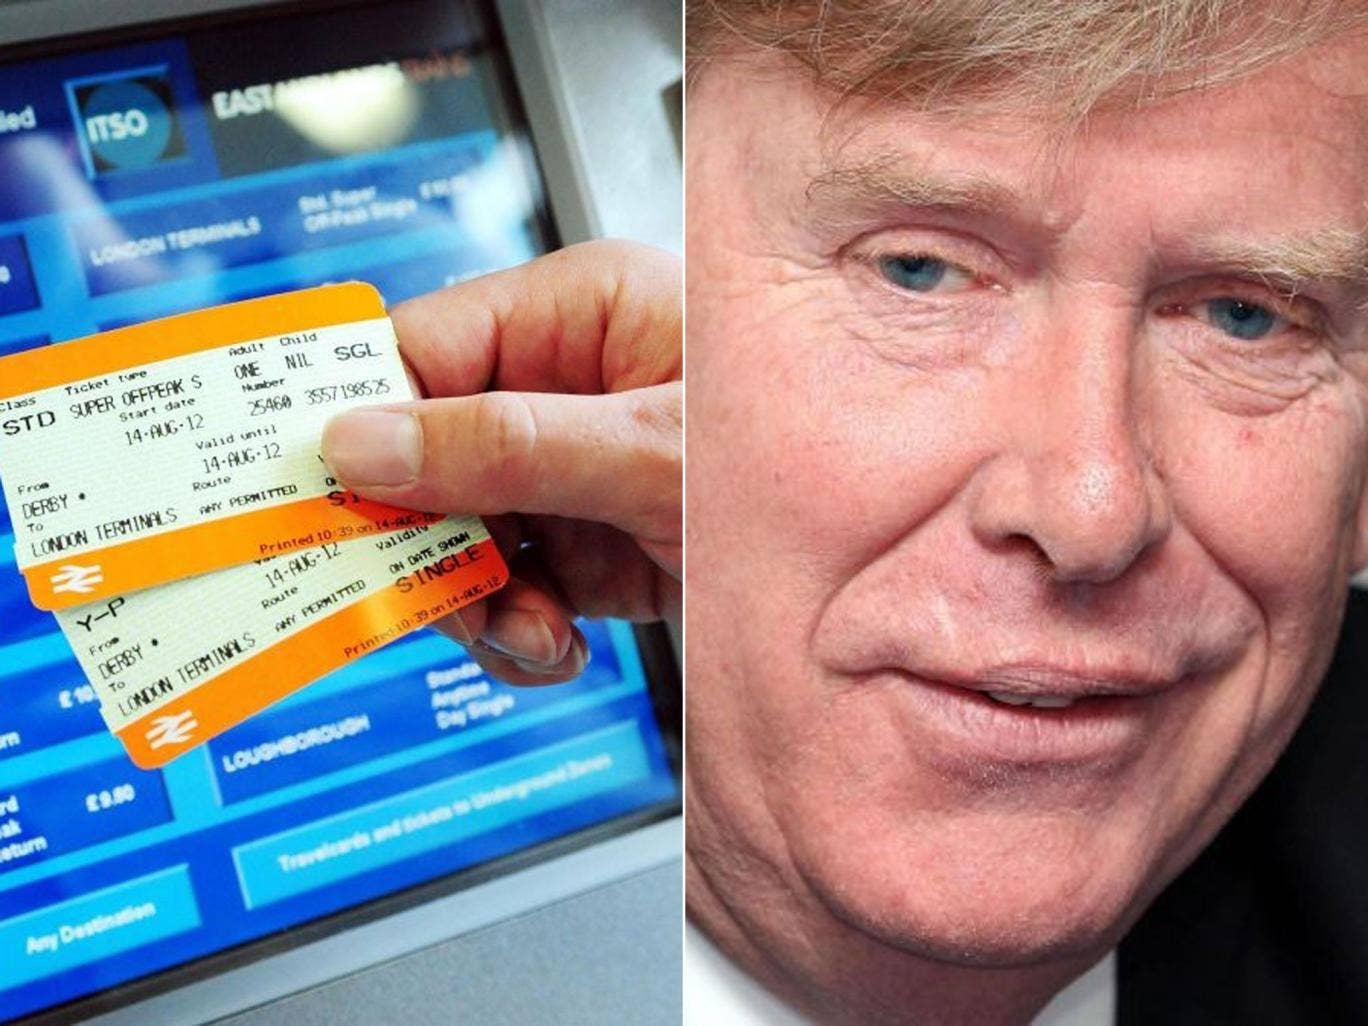 The minister responsible for rail fares, Simon Burns, is under fire today after it emerged that he commutes to work using a chauffeur-driven government car.